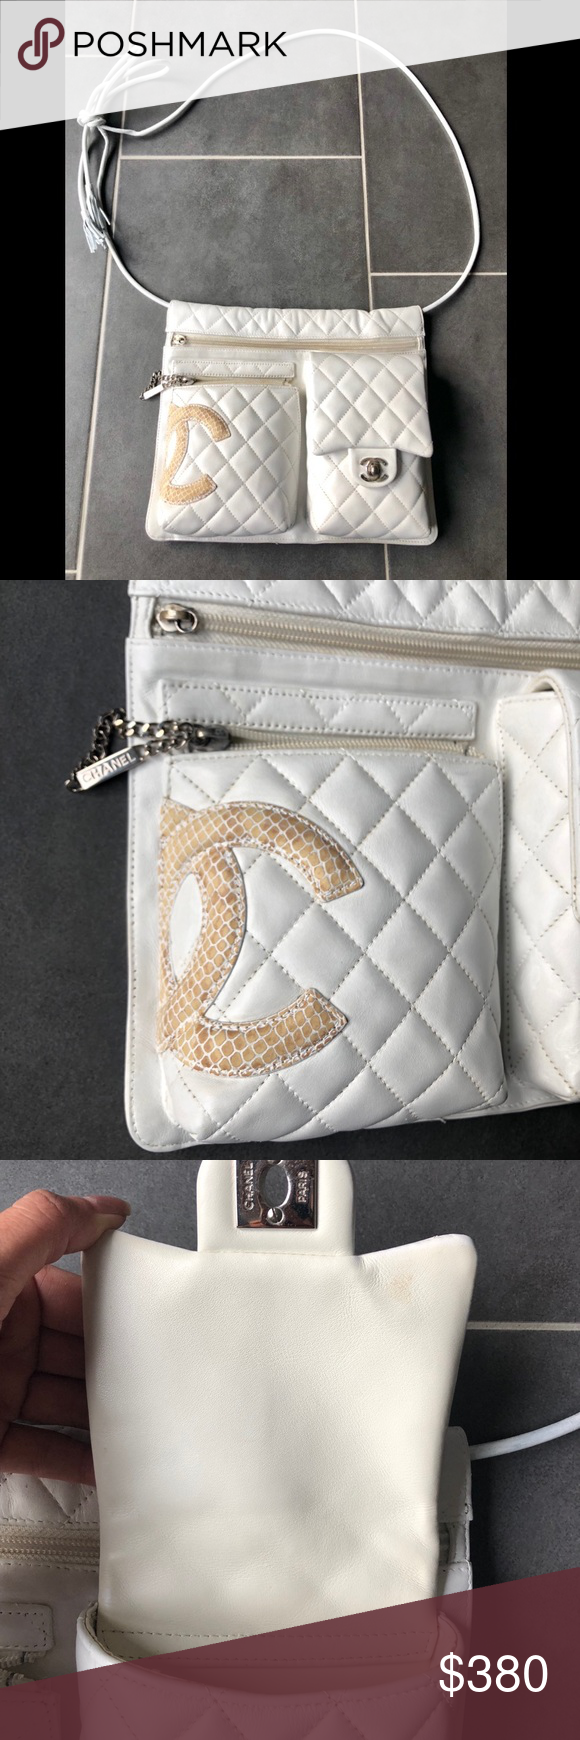 3bb43f738743cf Chanel Cambon Ligne Quilted shoulder crossbody bag Authentic Chanel Cambon  Ligne White Quilted shoulder bag Python